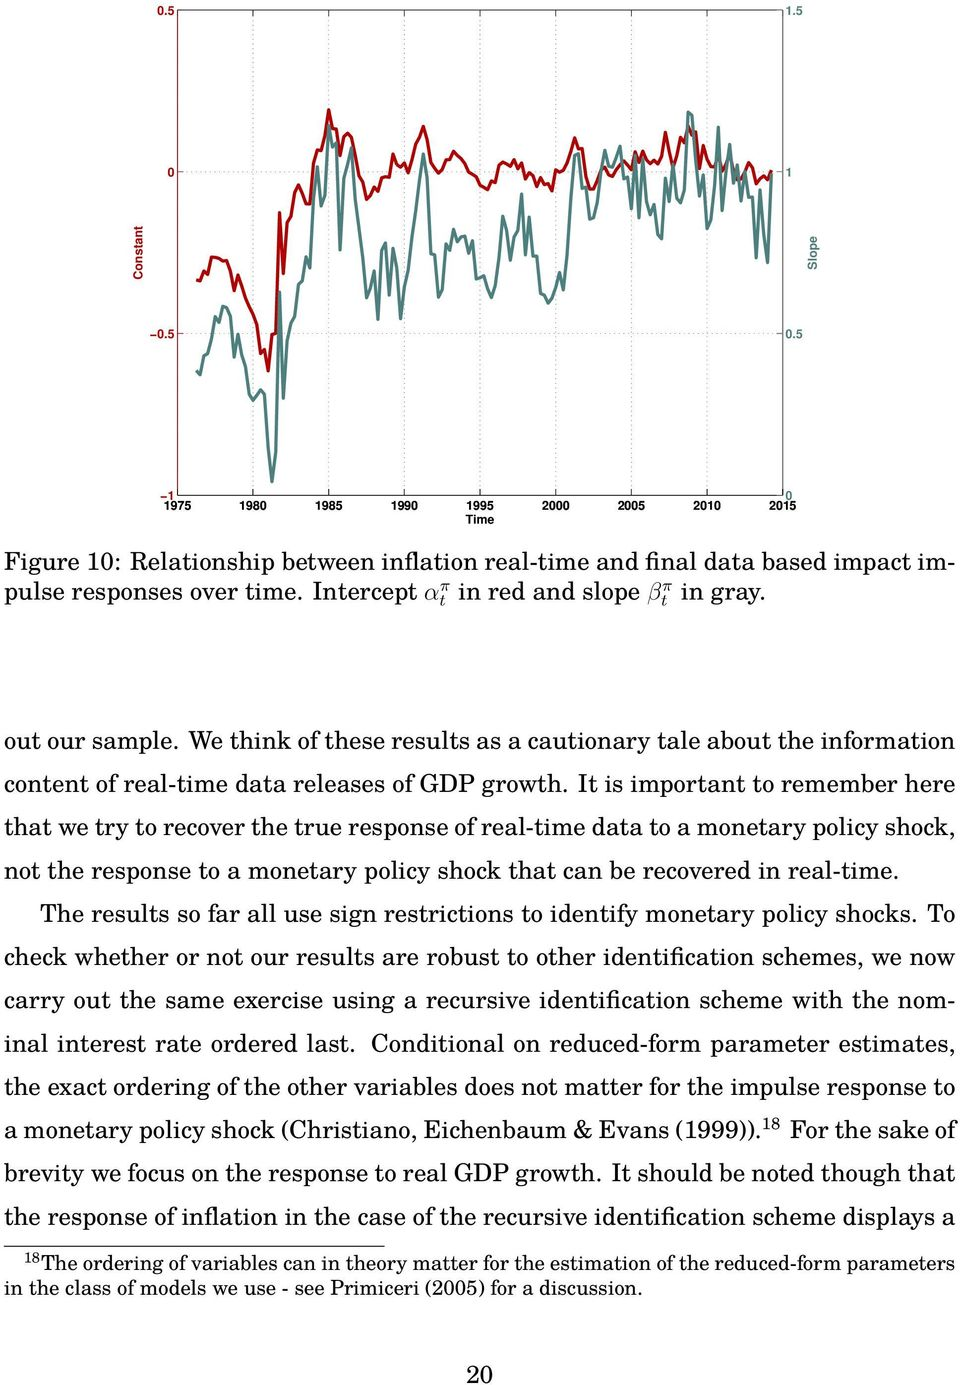 It is important to remember here that we try to recover the true response of real-time data to a monetary policy shock, not the response to a monetary policy shock that can be recovered in real-time.